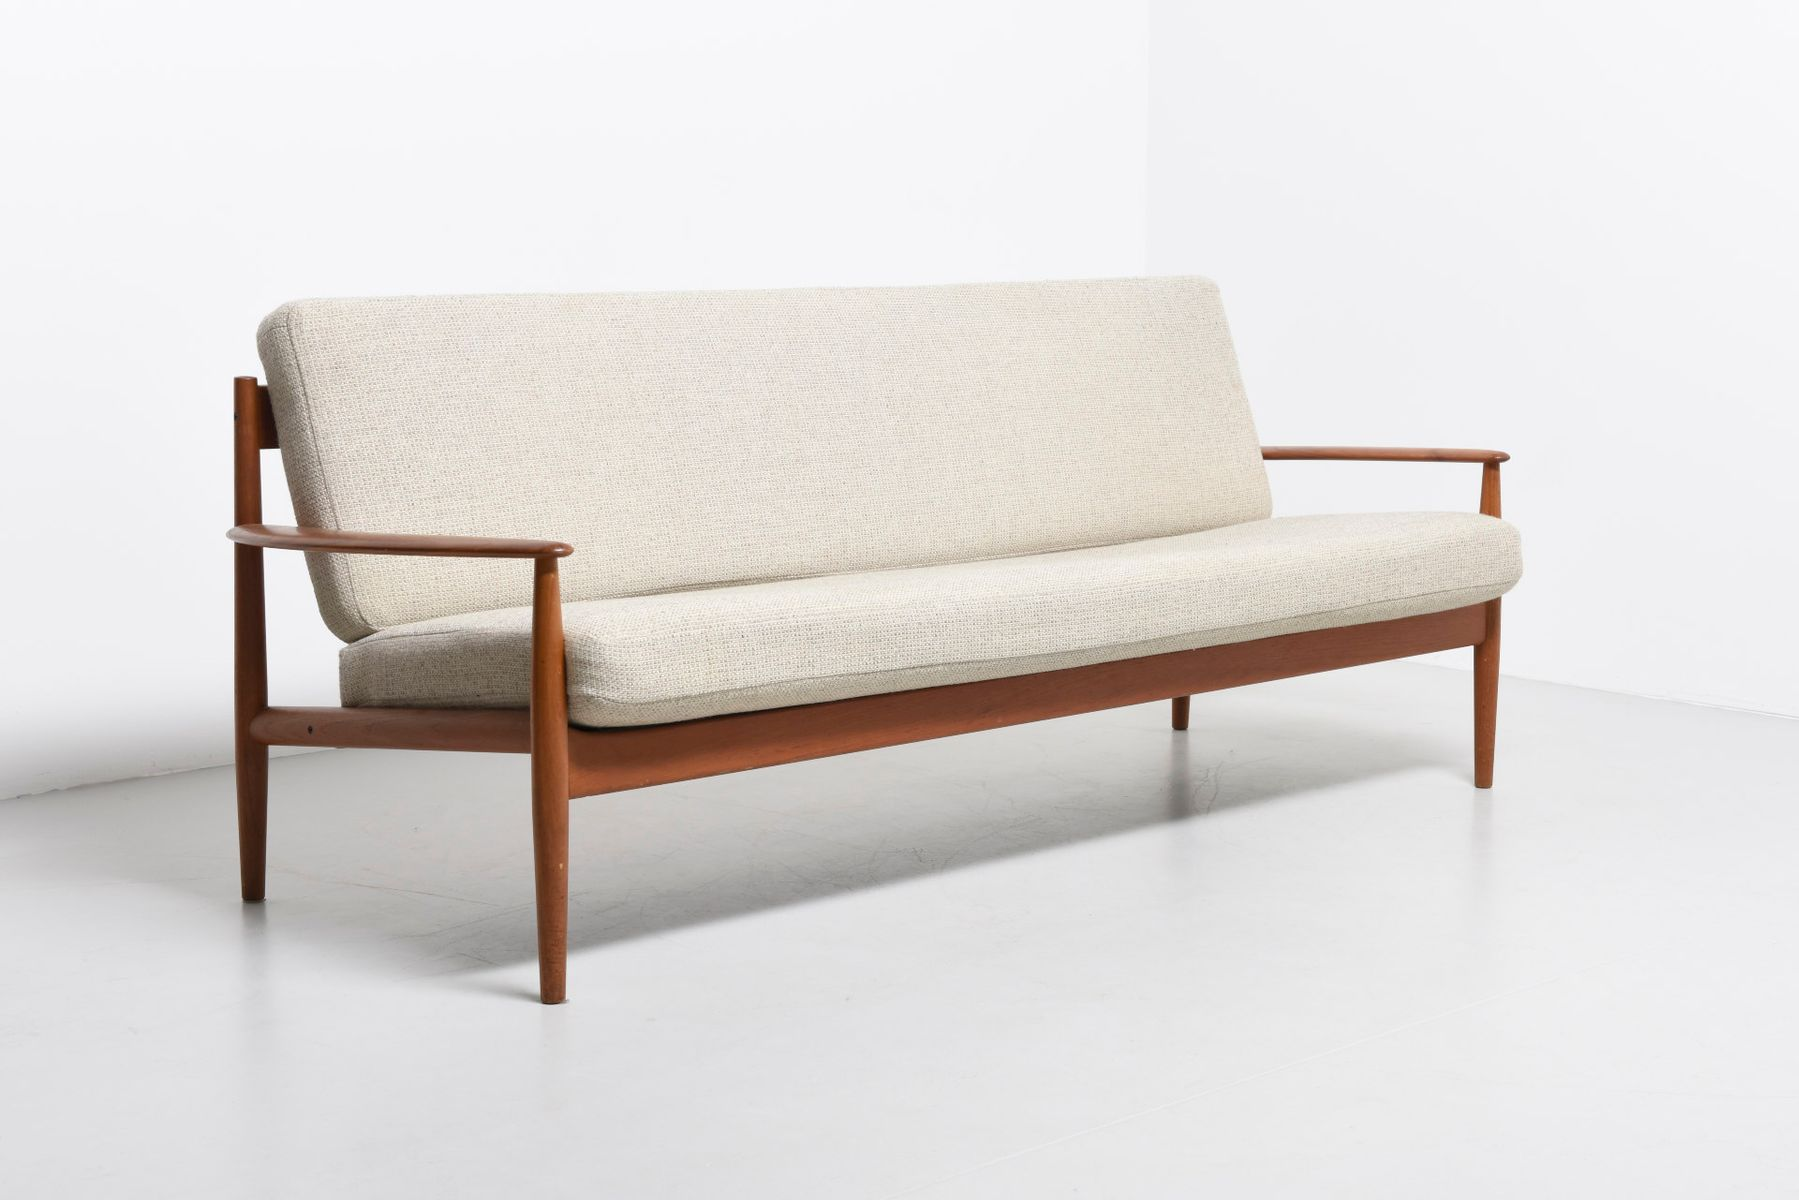 danish modern 3 seater sofa with a teak frame by grete jalk